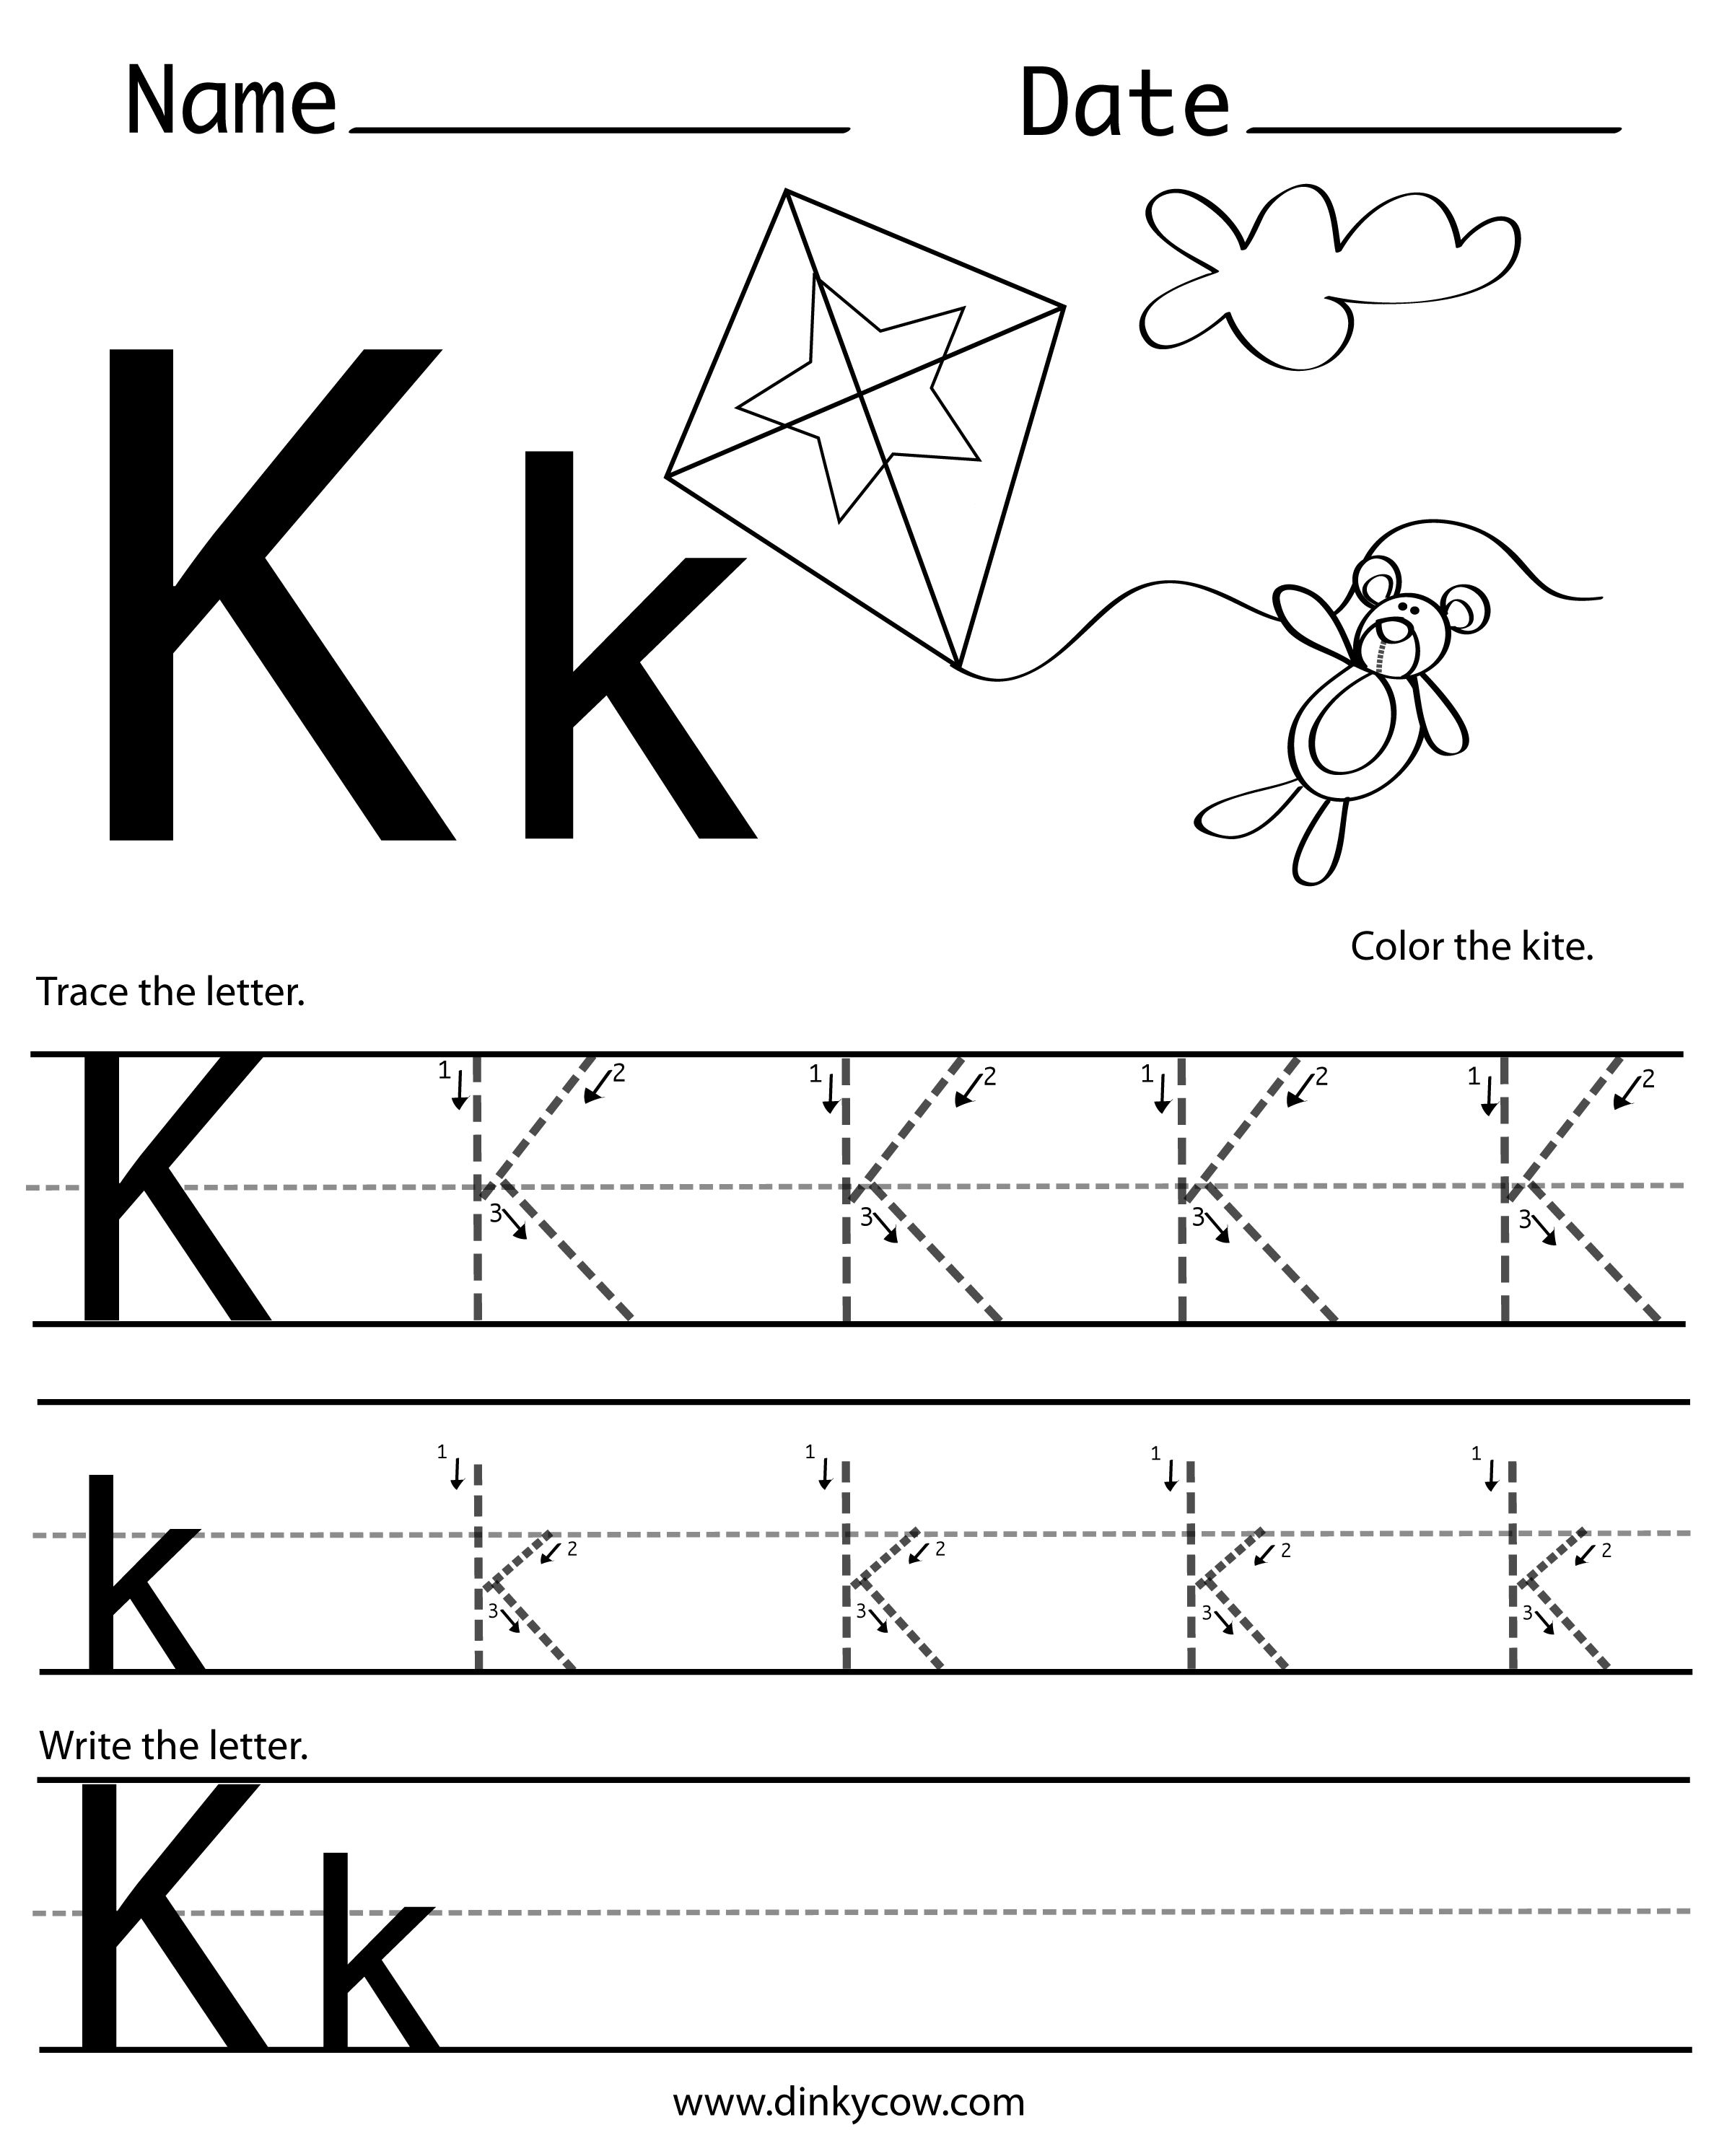 K Free Handwriting Worksheet Print 2 400 2 988 Pixels